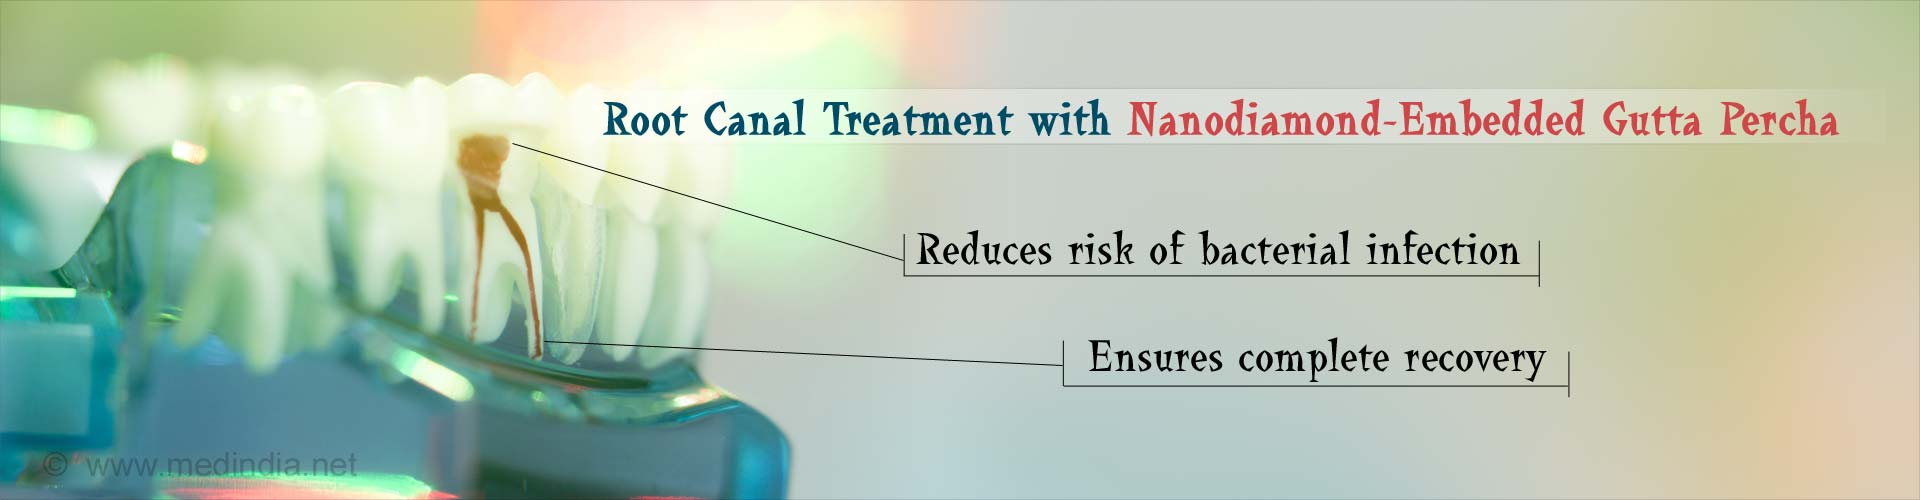 Nanodiamonds Reduce Infection After Root Canal Treatment